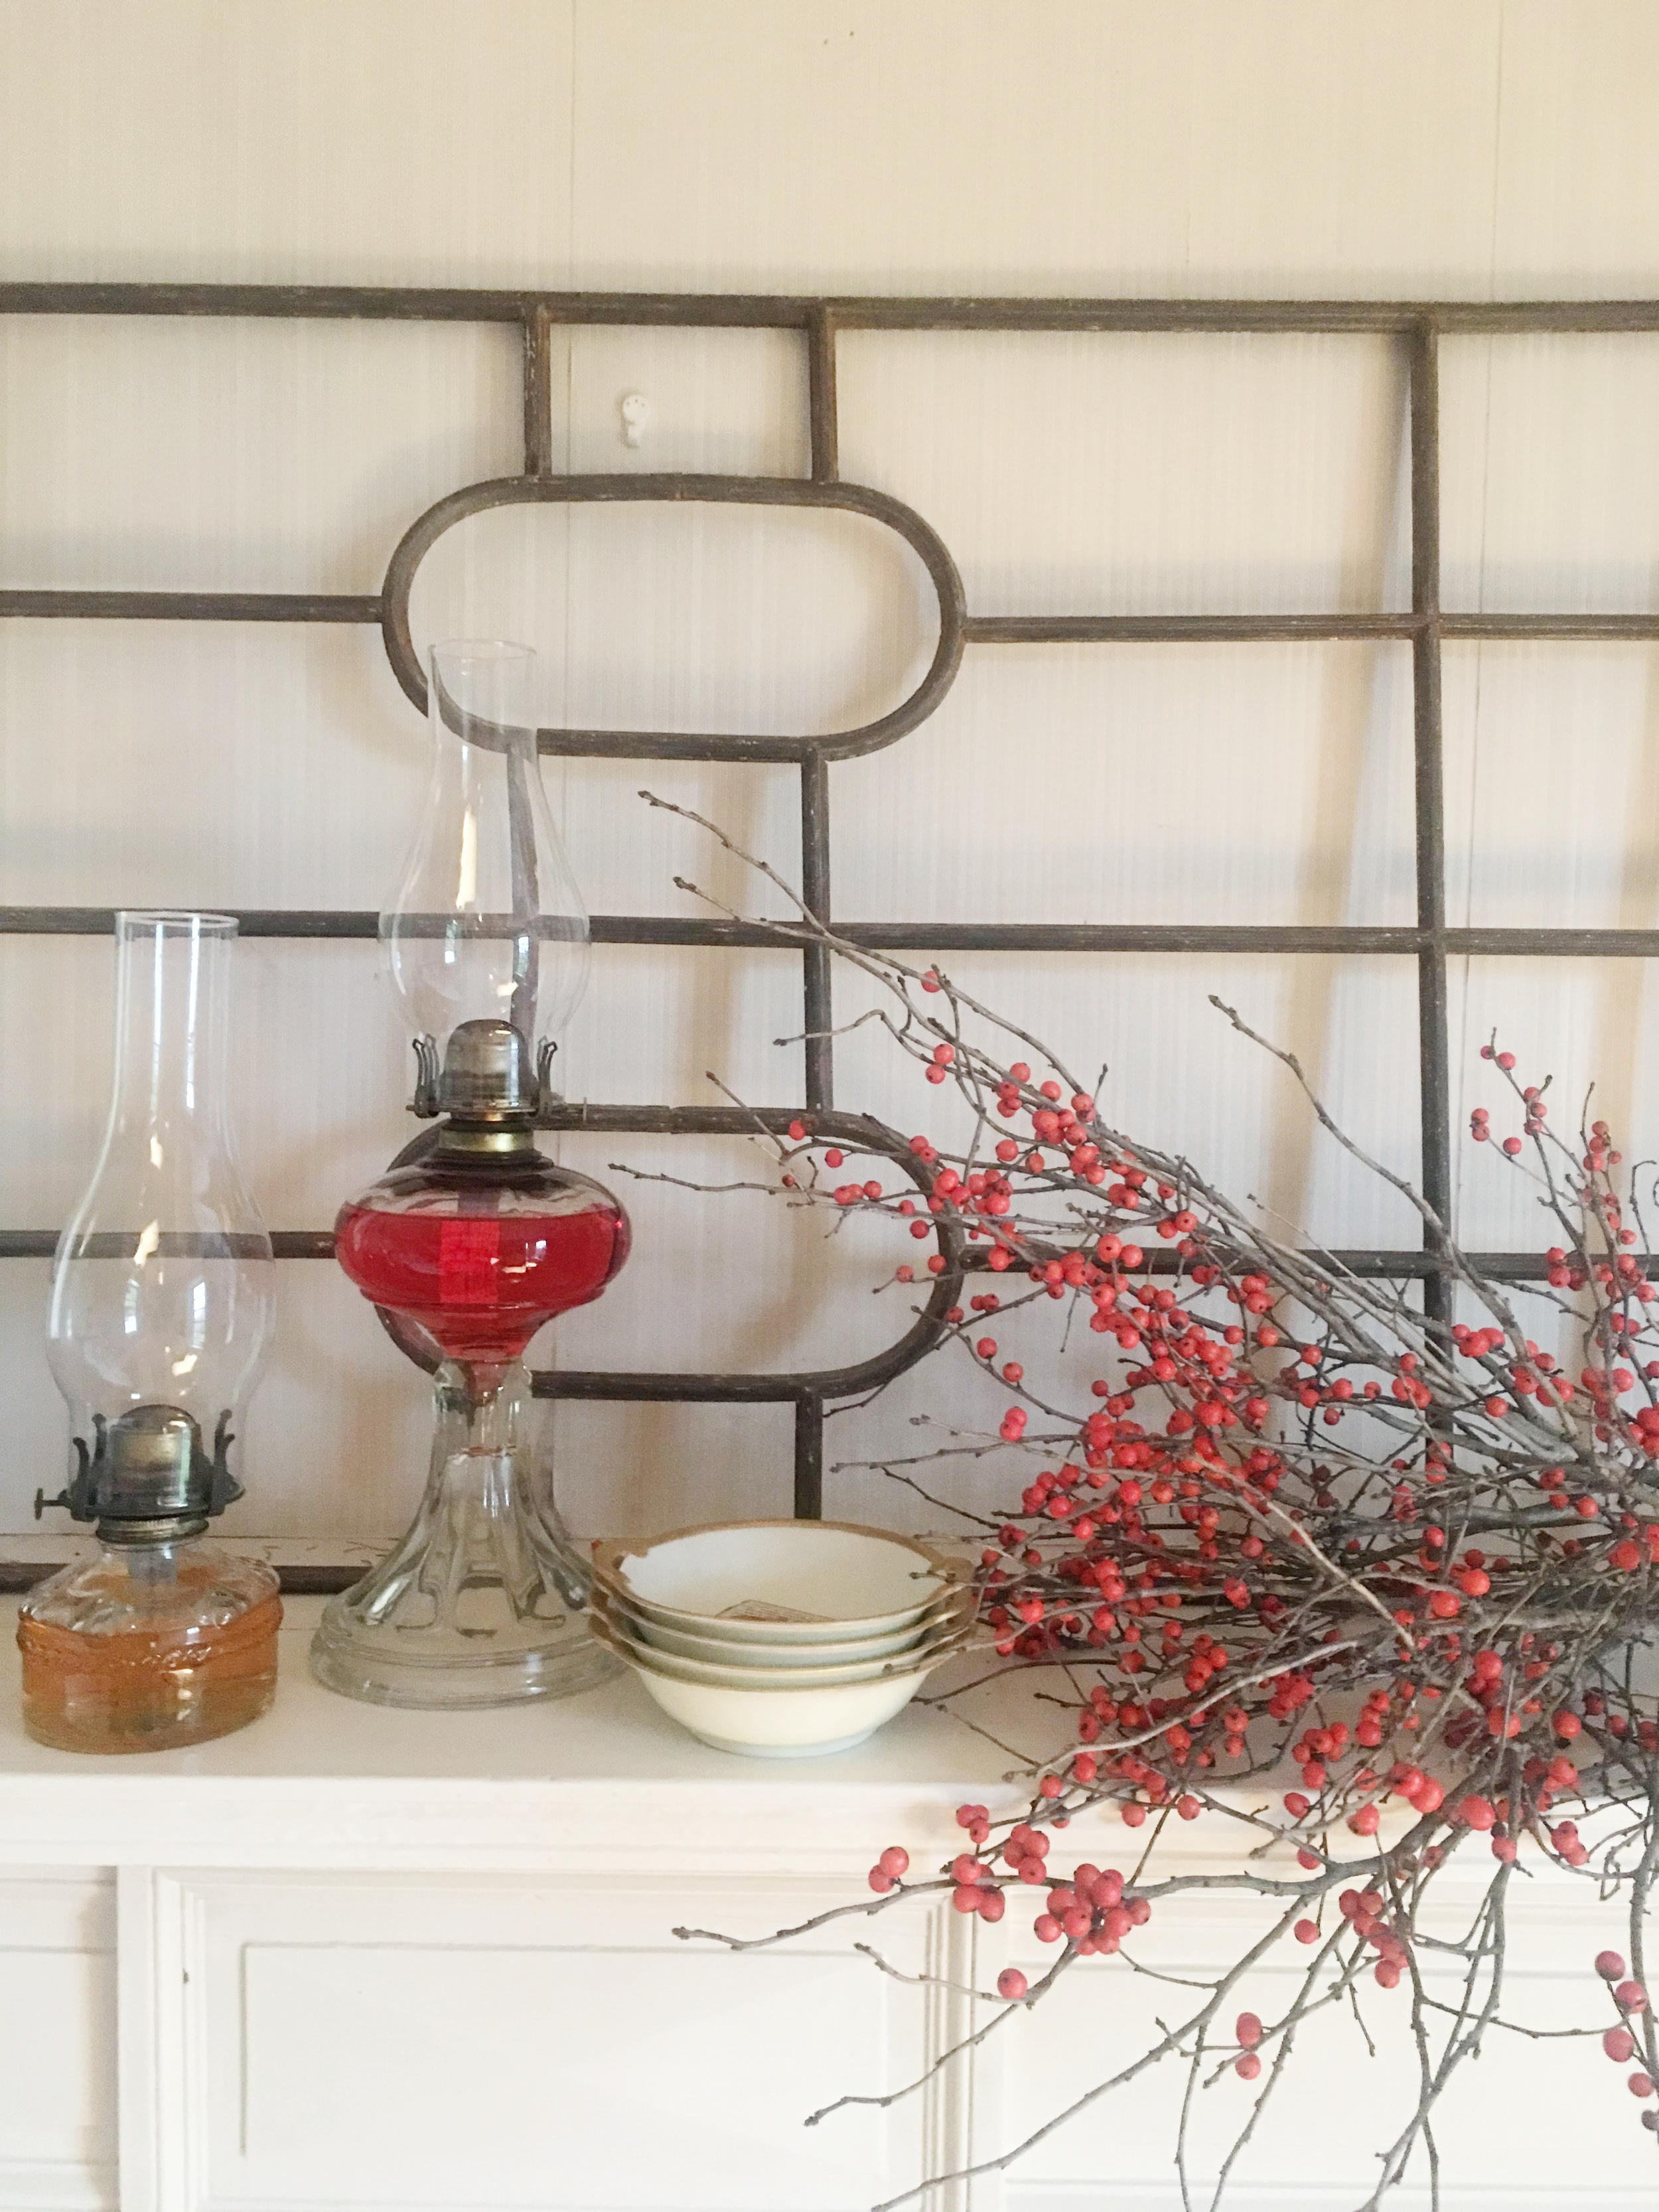 A Christmas vignette created with our oil lamps, my Great Grandmother's handpainted bowls and Ilex berries from my Mom's home in Northern Ontario.